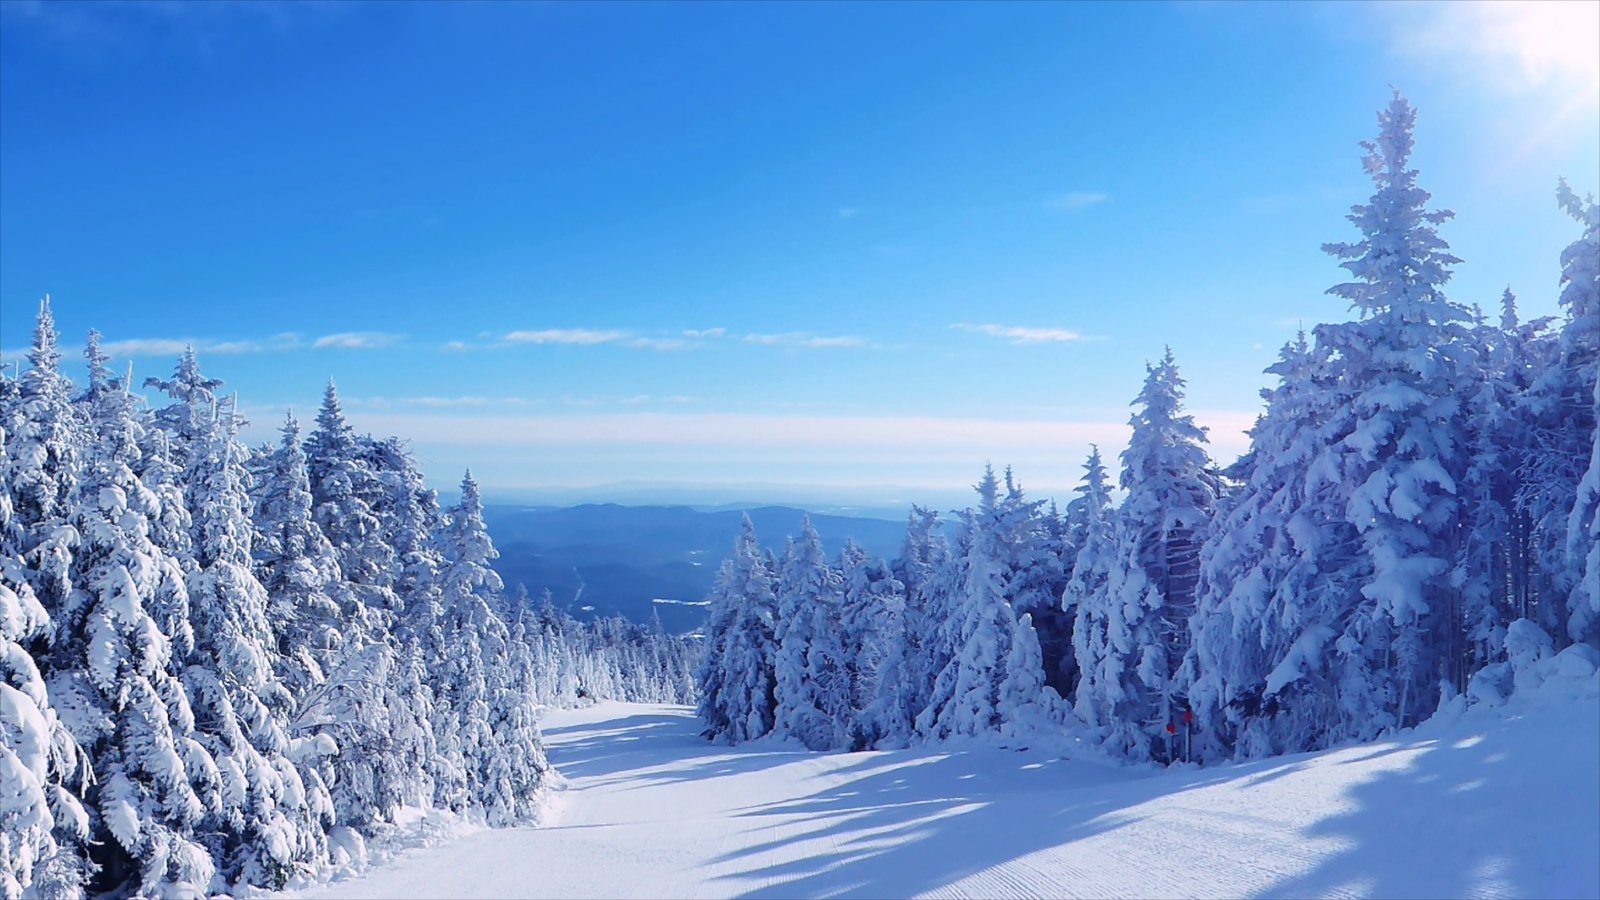 winter pictures: view images of okemo mountain resort